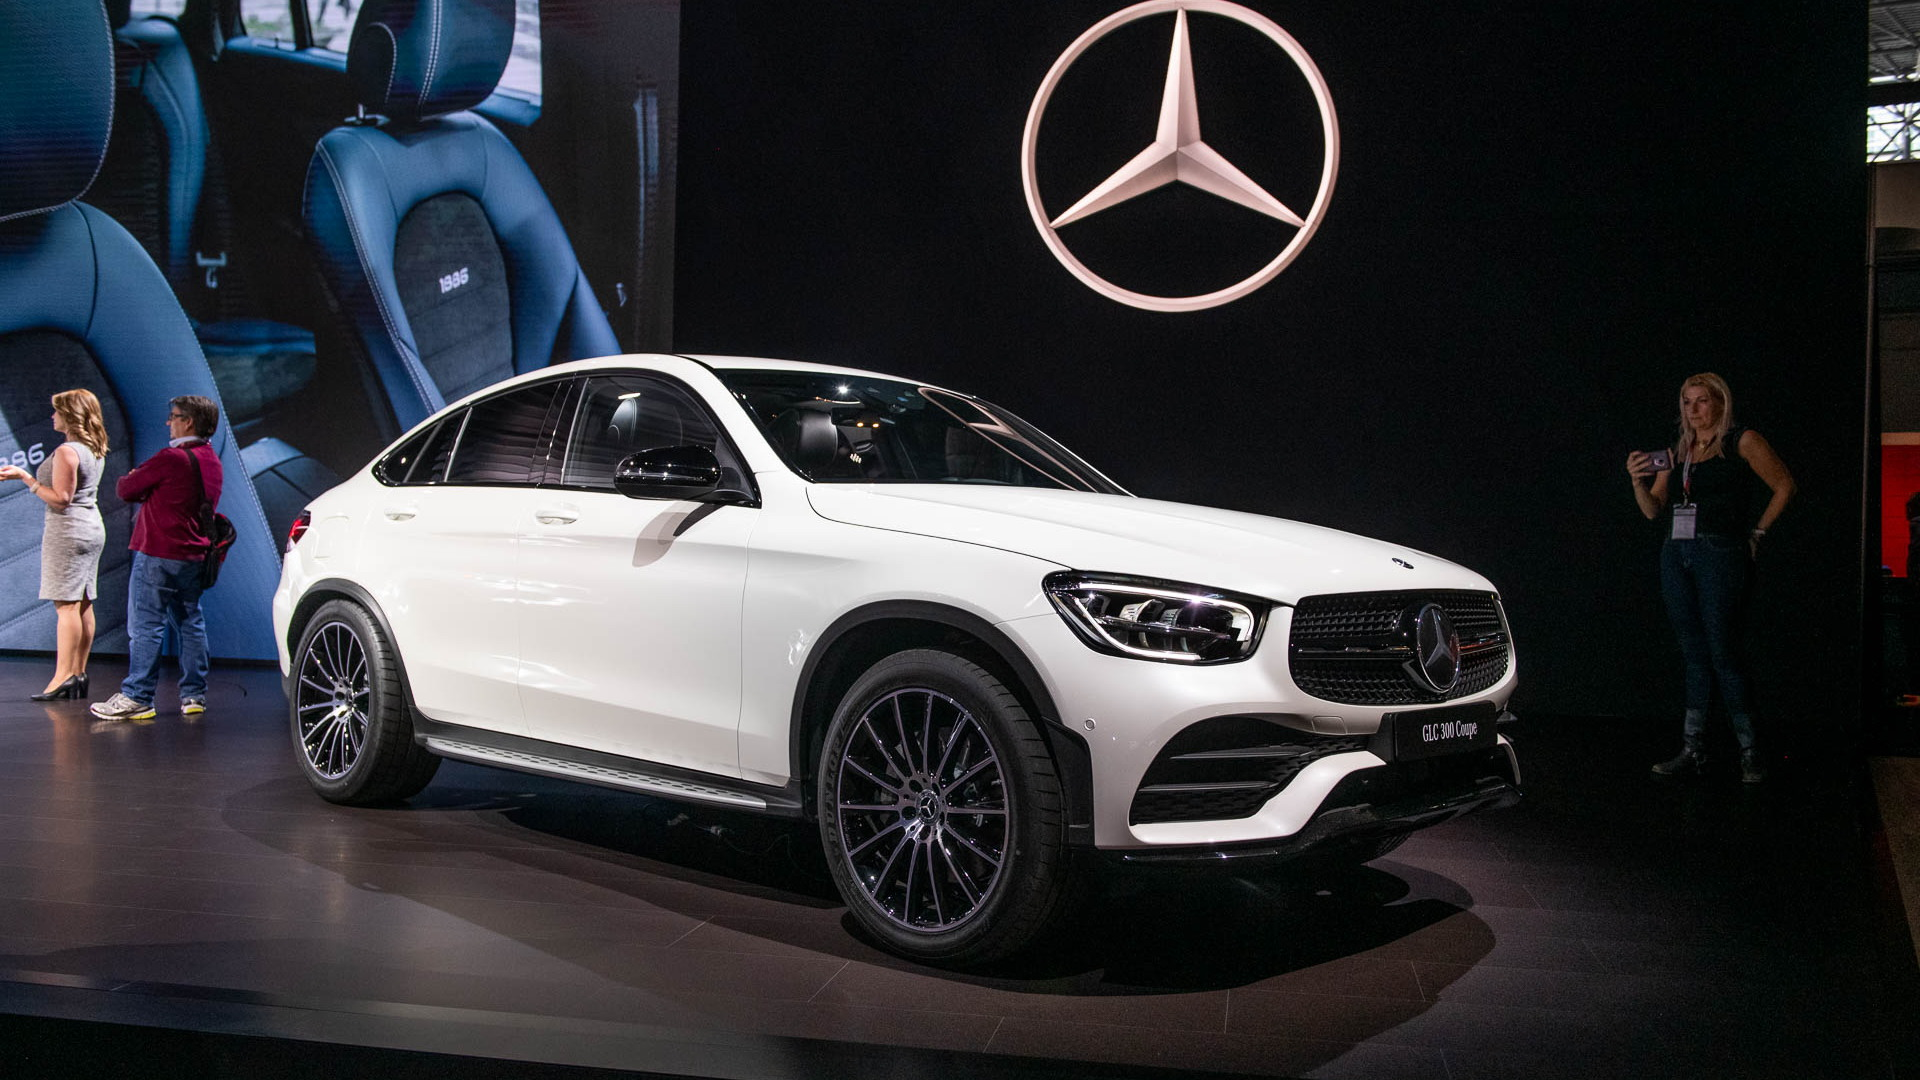 2020 Mercedes-Benz GLC300, 2019 New york International Auto Show